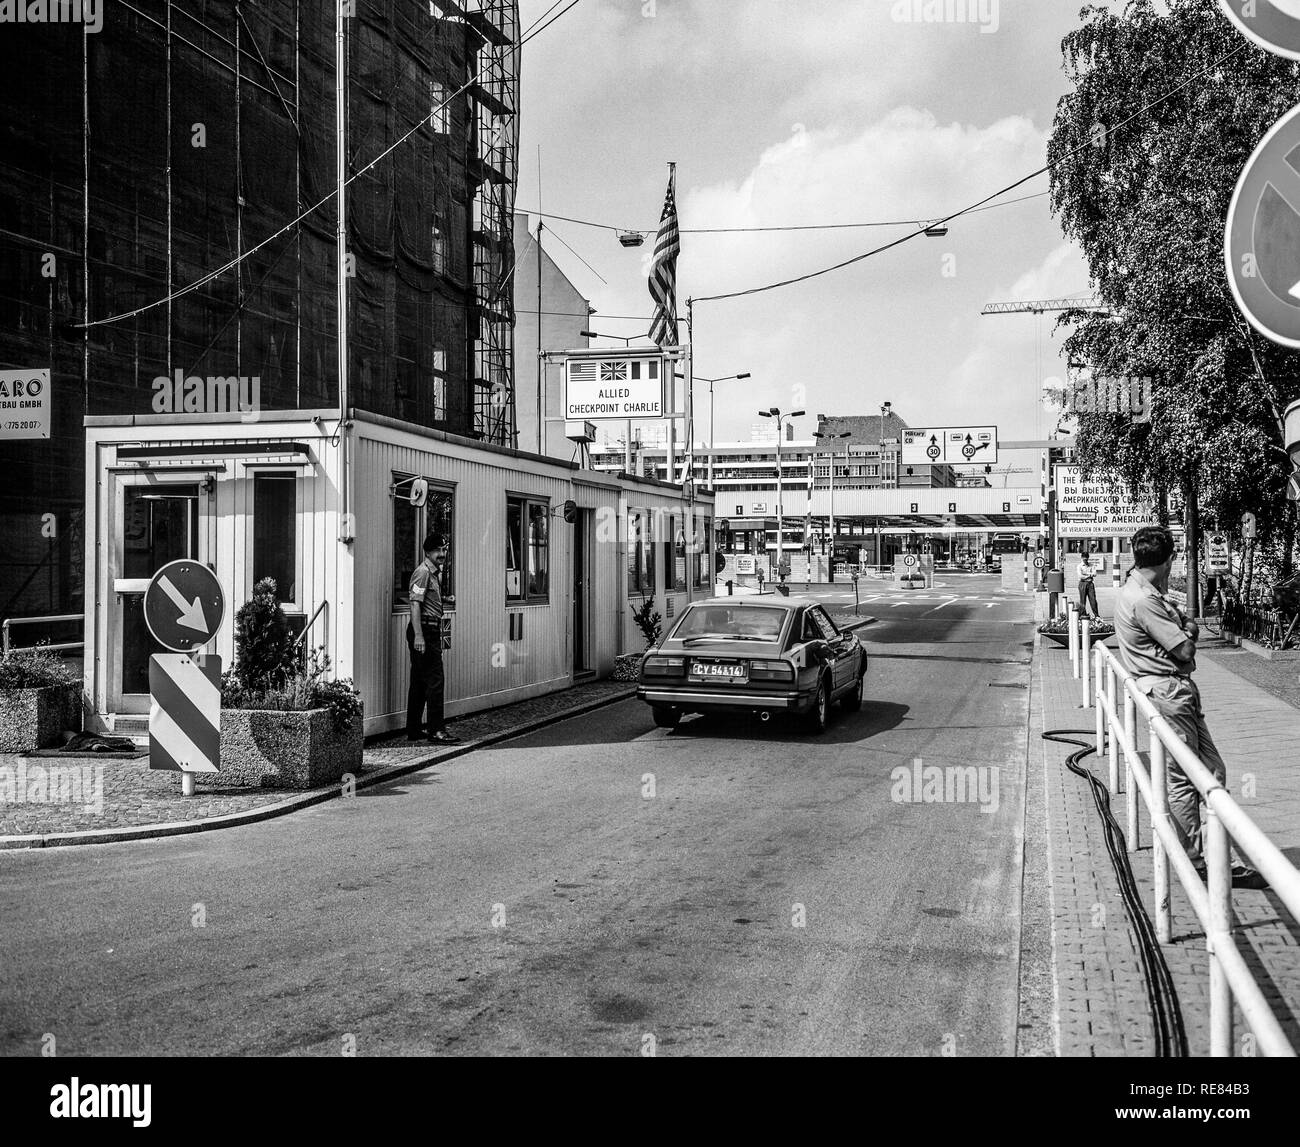 August 1986, Allied Checkpoint Charlie, British military police officer, red car, Friedrichstrasse street, Kreuzberg, West Berlin, Germany, Europe, - Stock Image